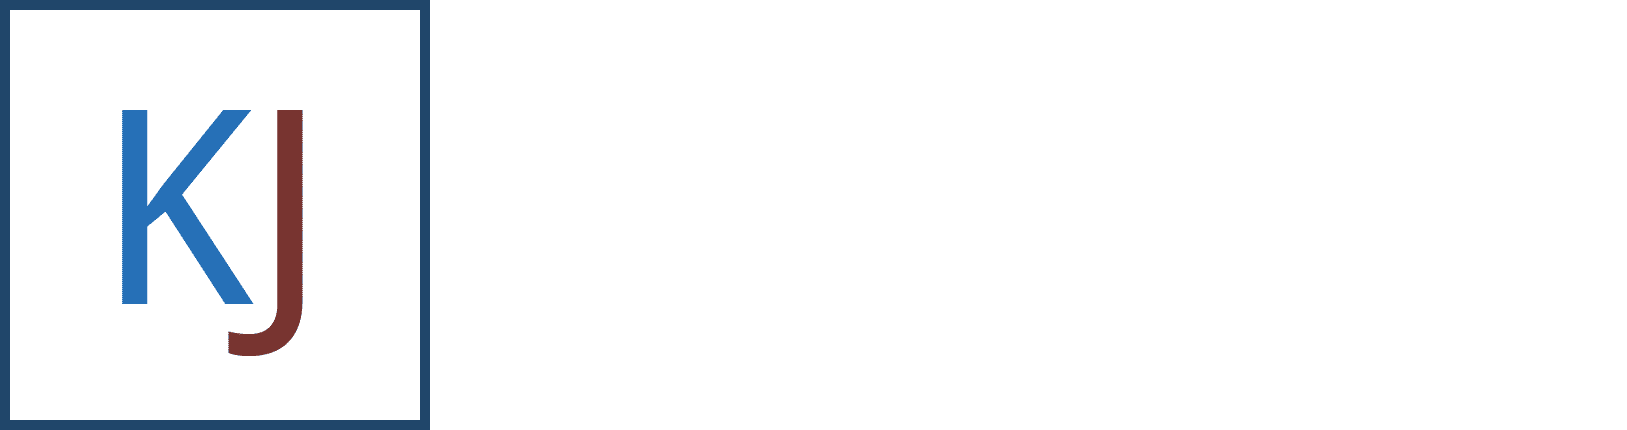 Kevin Johnson Plumbing & Heating